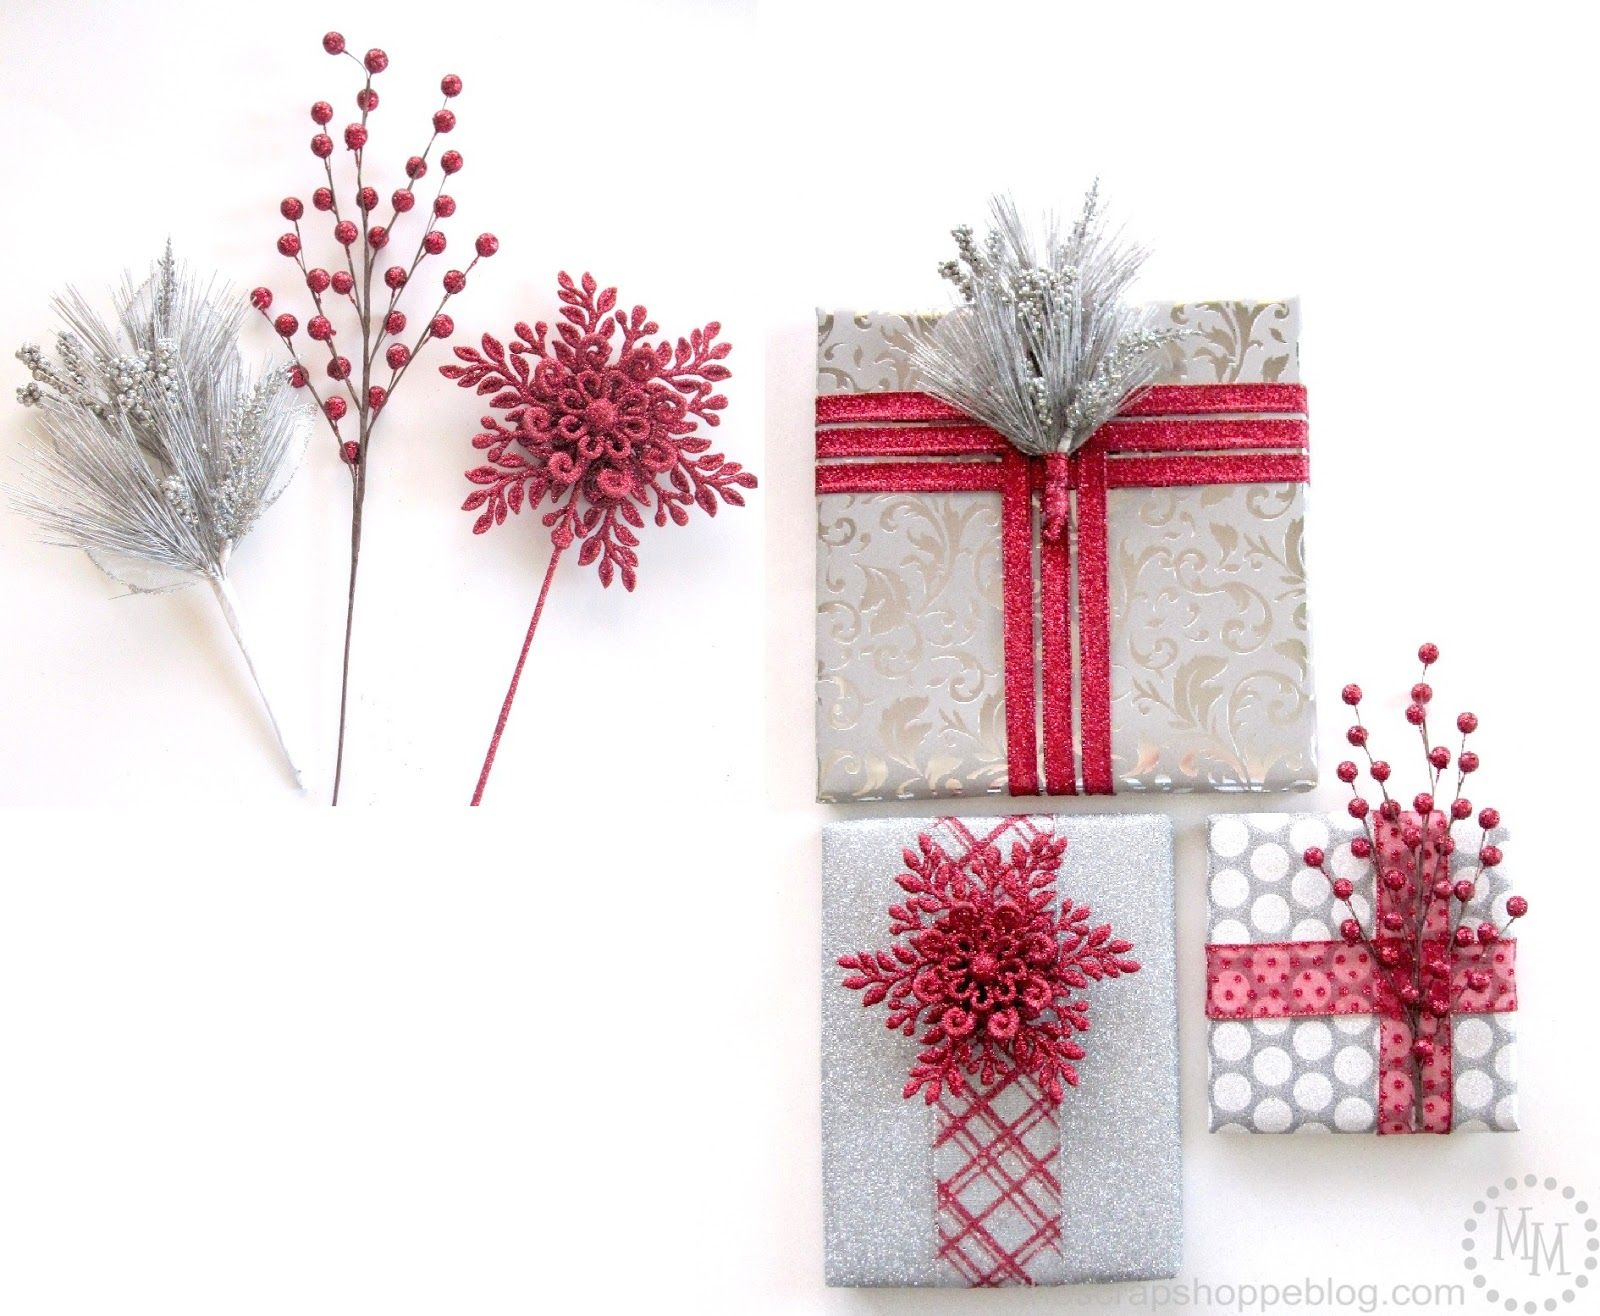 diy christmas crafts christmas gift decorations christmas gift wrapping christmas presents - Christmas Gift Decorations